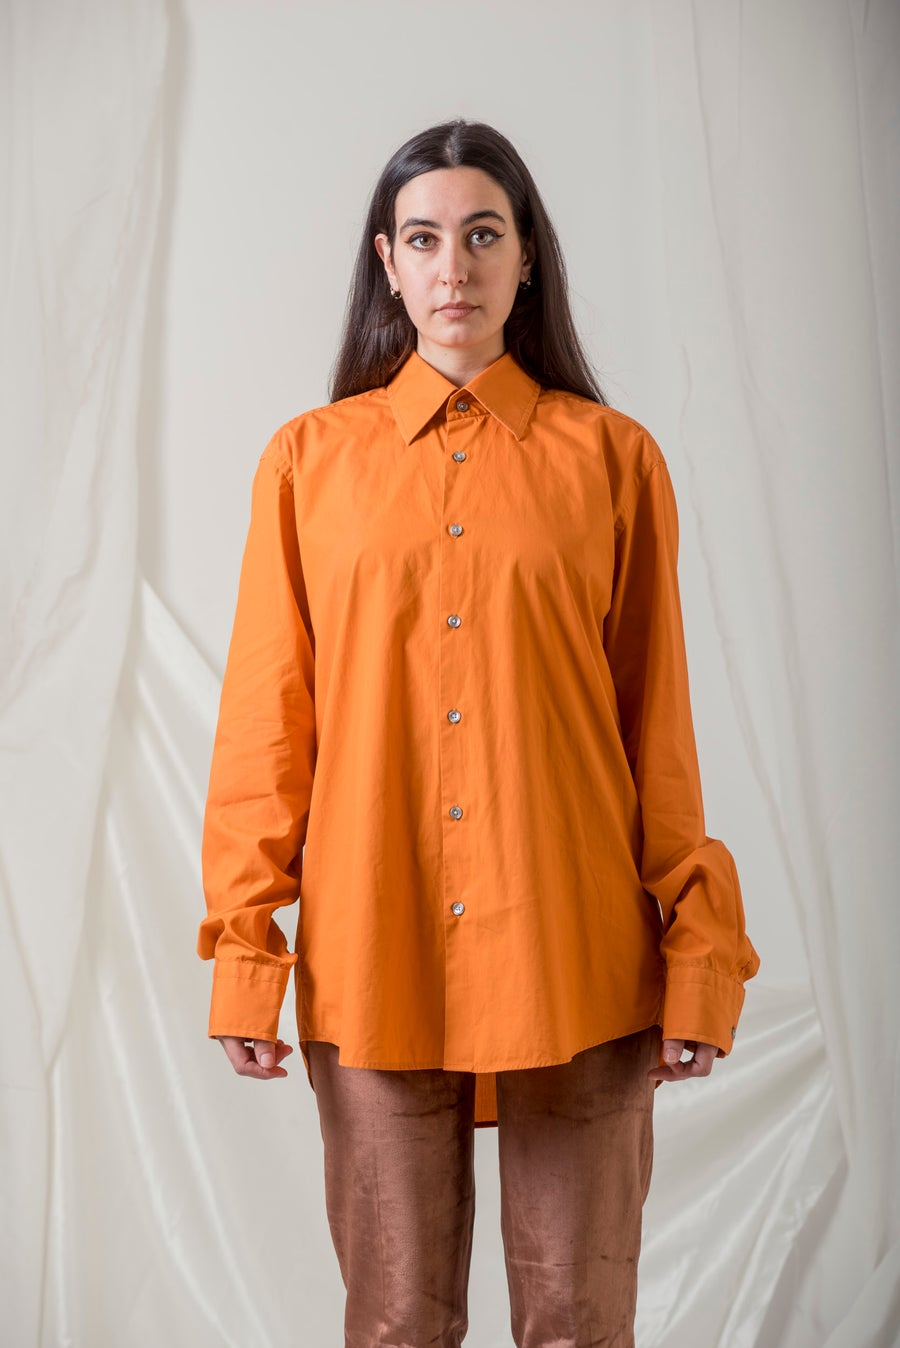 Image of Orange Hugo Boss Button Up Shirt 100% Cotton